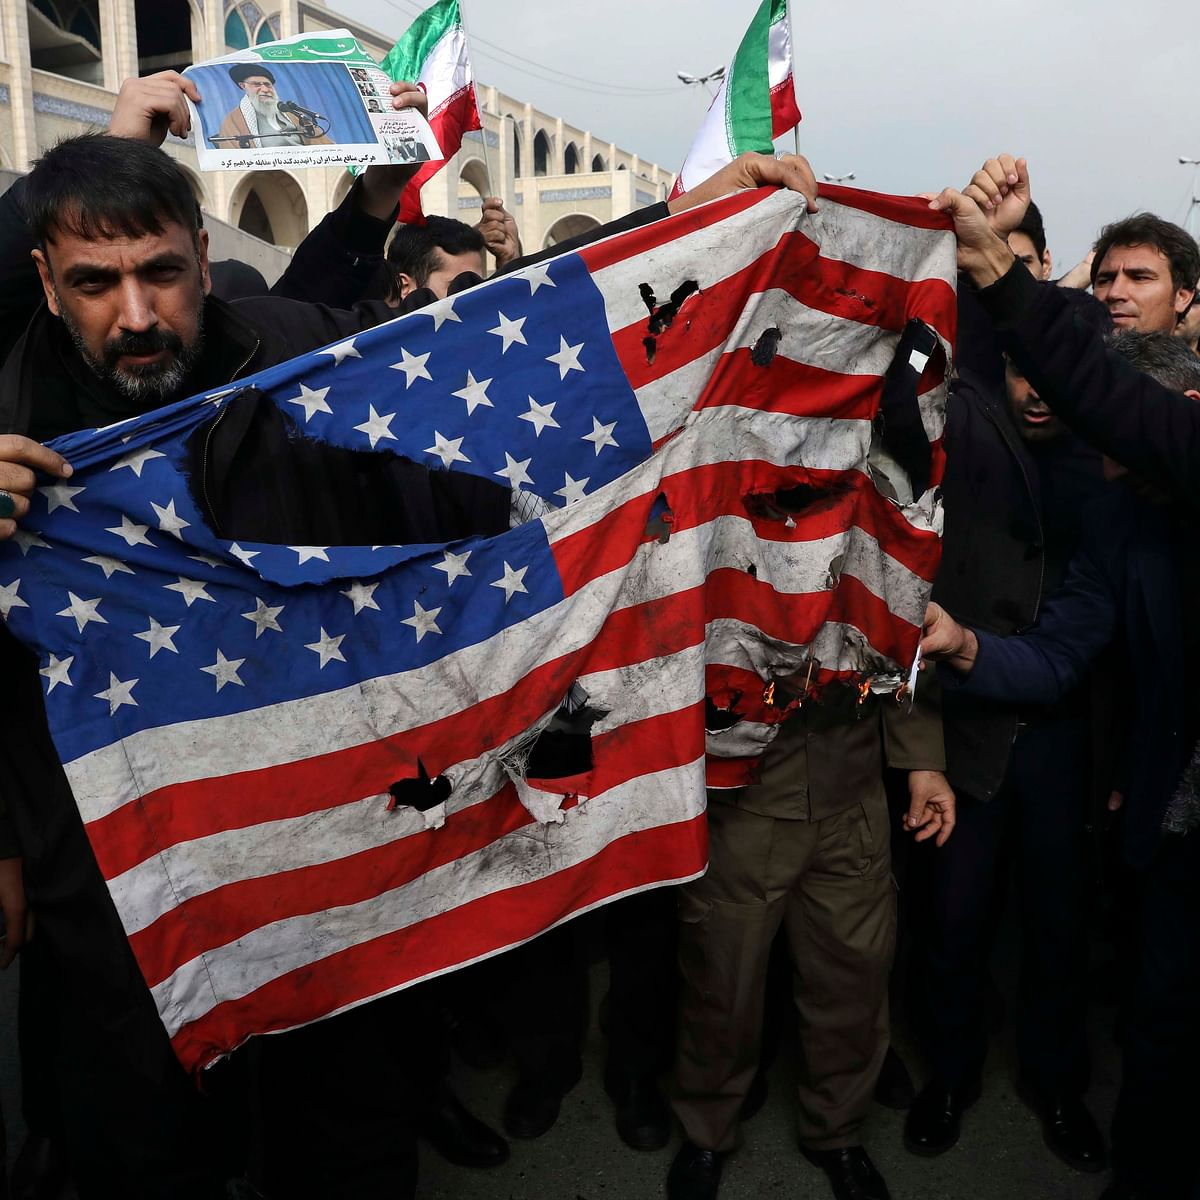 Protesters burn a U.S. flag during a demonstration over the U.S. airstrike in Iraq that killed Iranian Revolutionary Guard Gen. Qassem Soleimani, in Tehran (PTI)